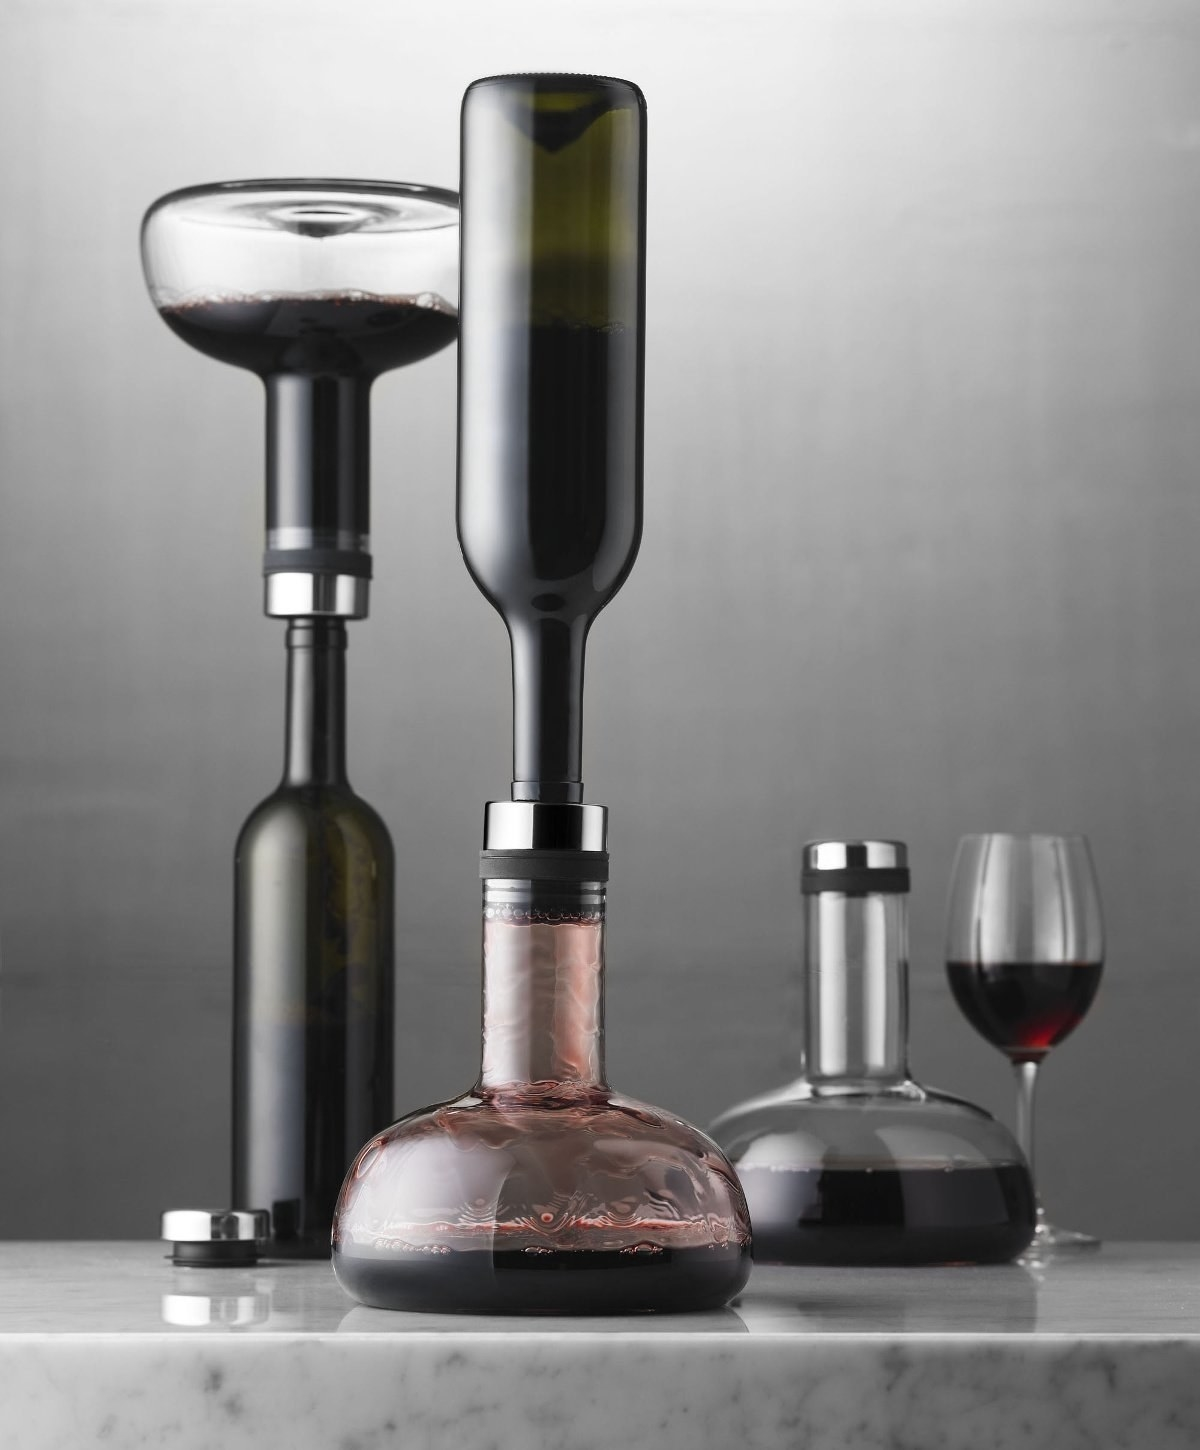 Decanter with bottle dripping from above